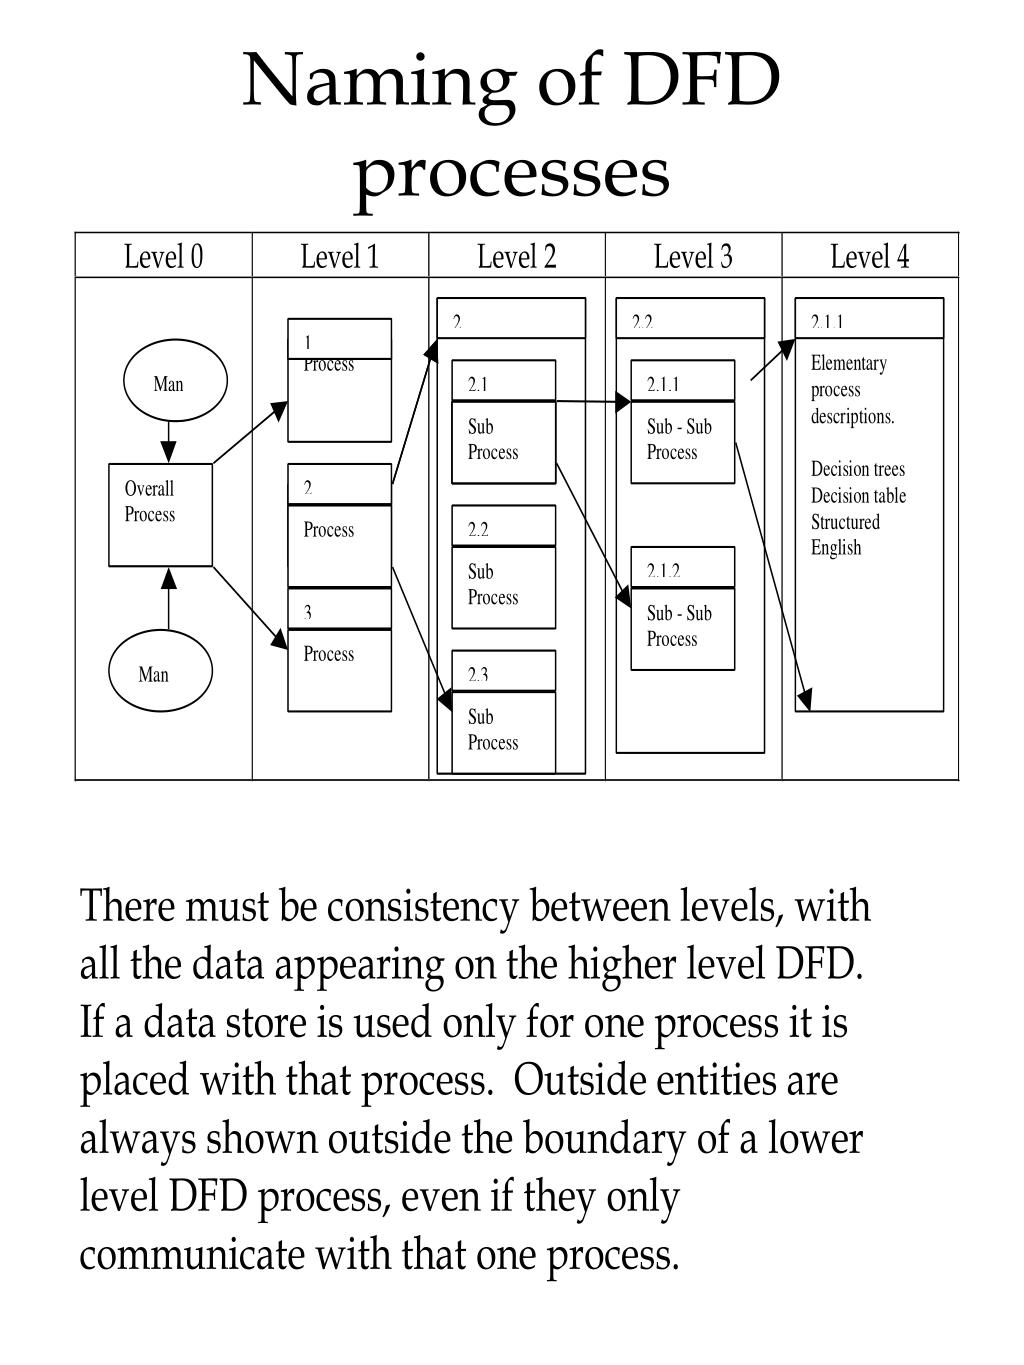 Naming of DFD processes